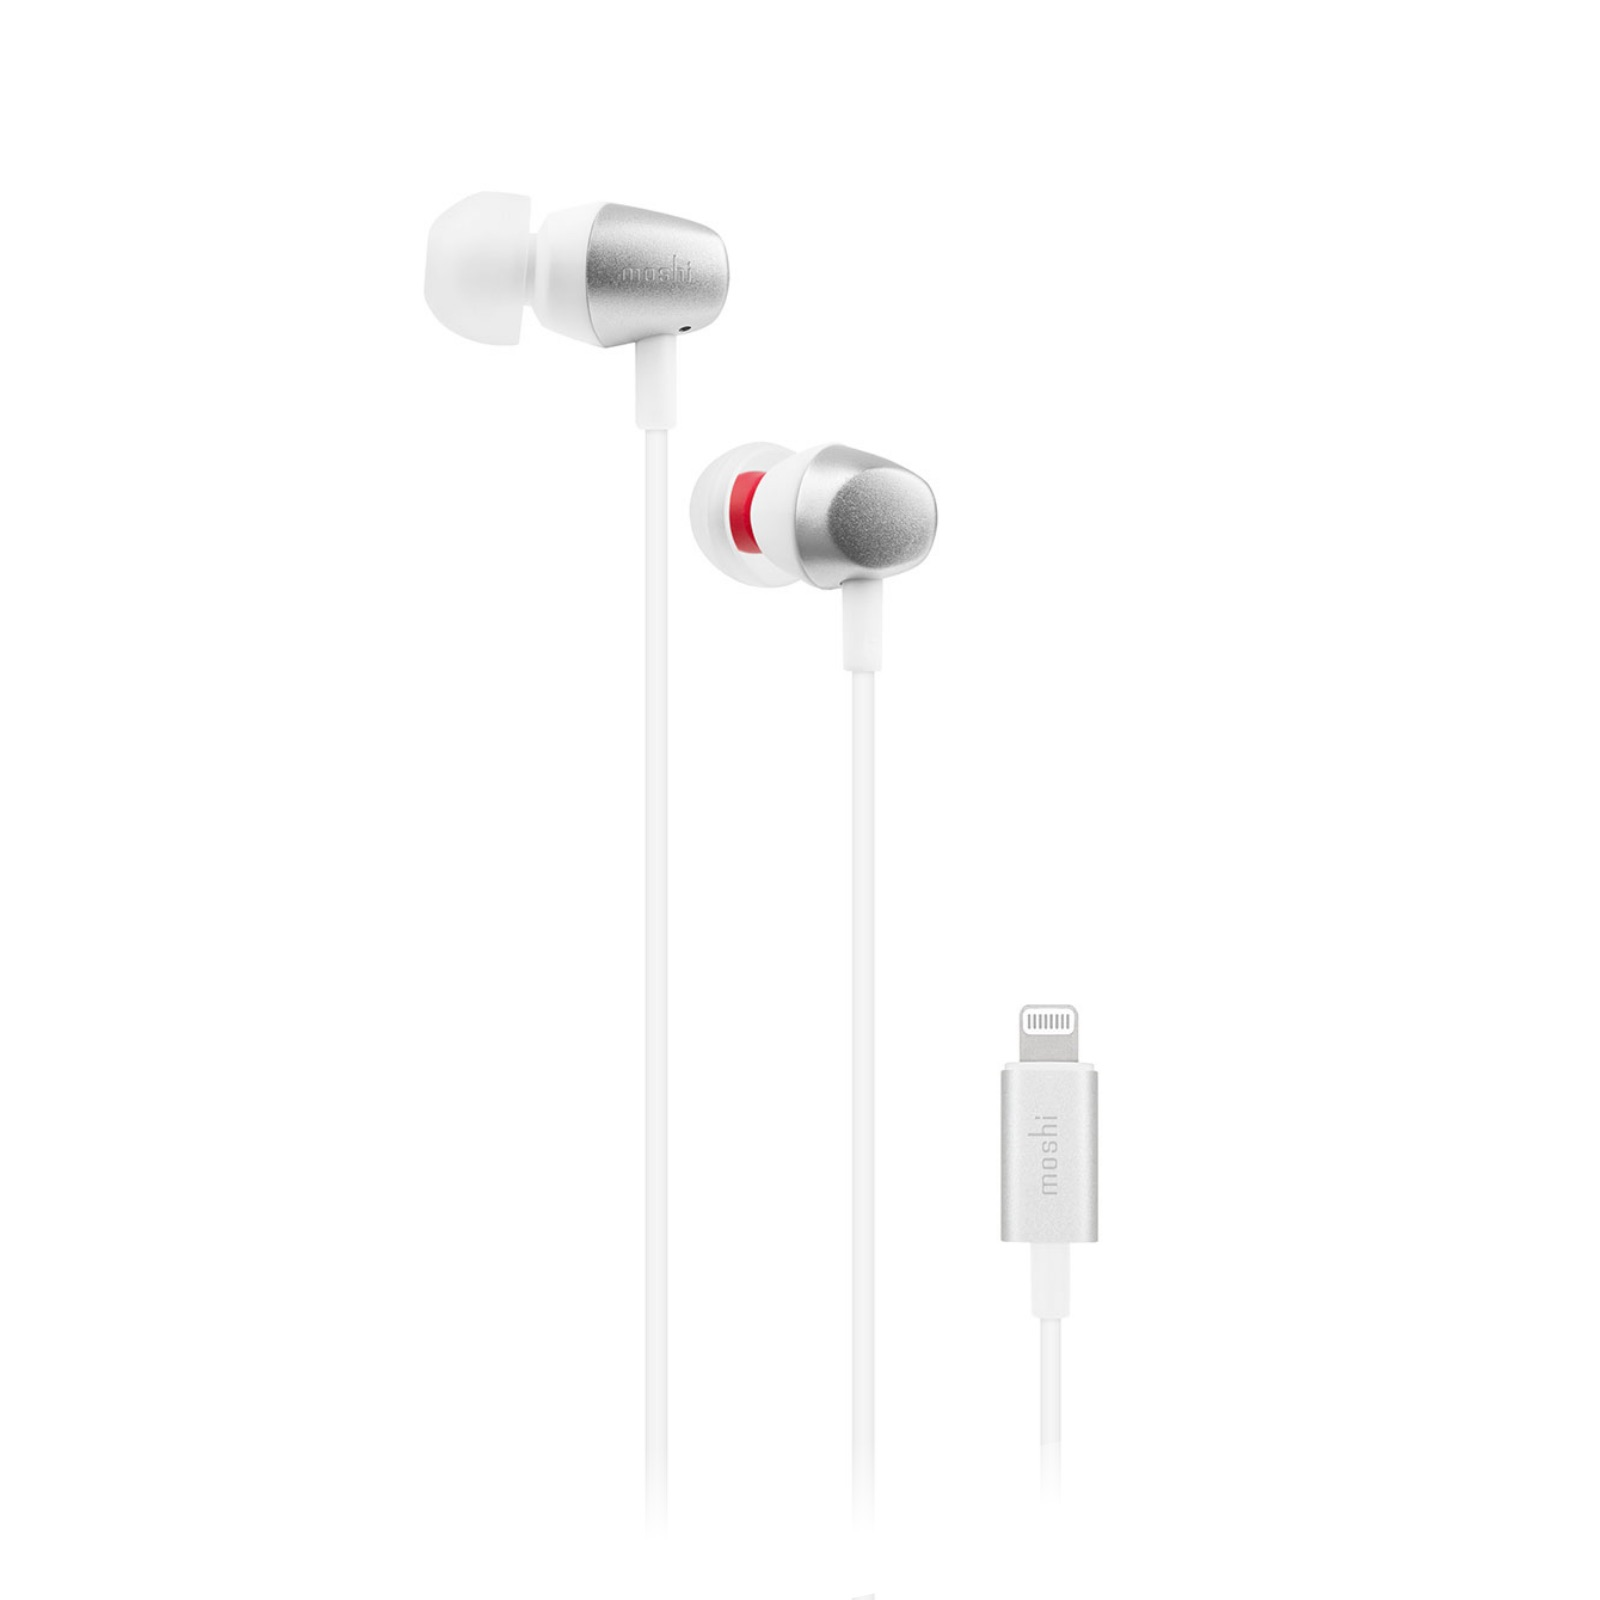 Mythro Lightning Earbuds with Mic-image